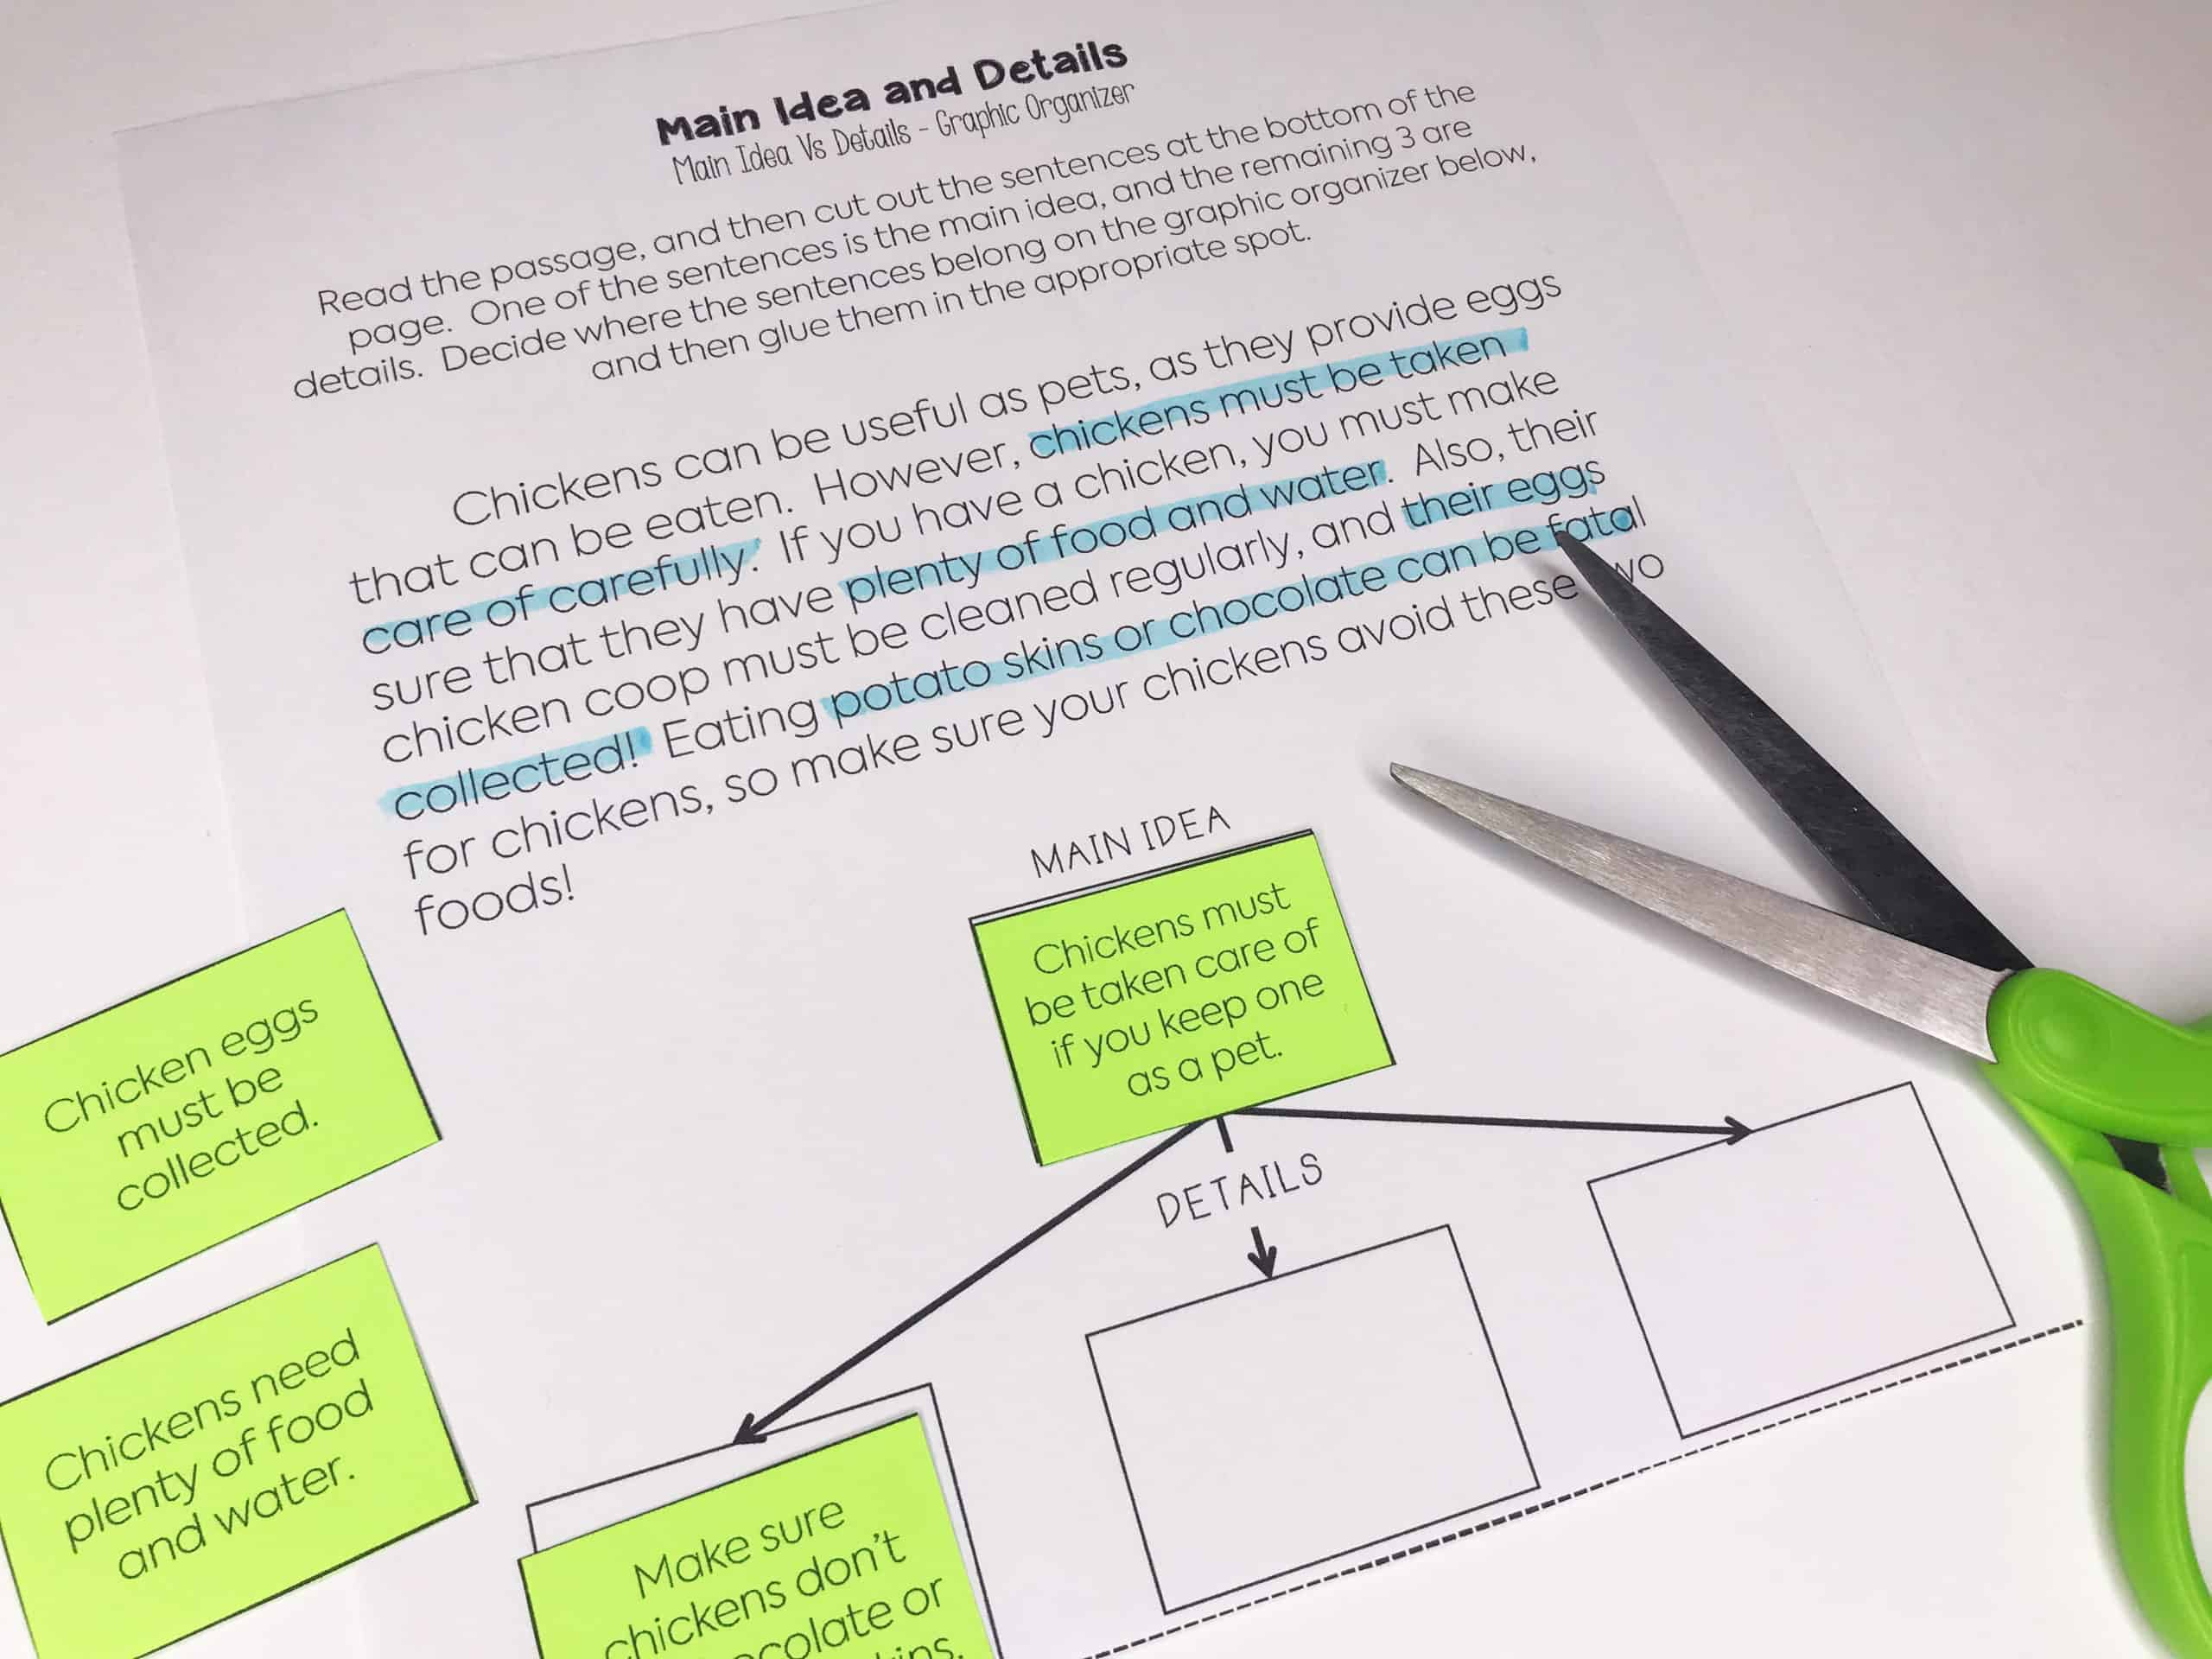 Scaffolded graphic organizers are a great way to teach students how to distinguish between the main idea and details